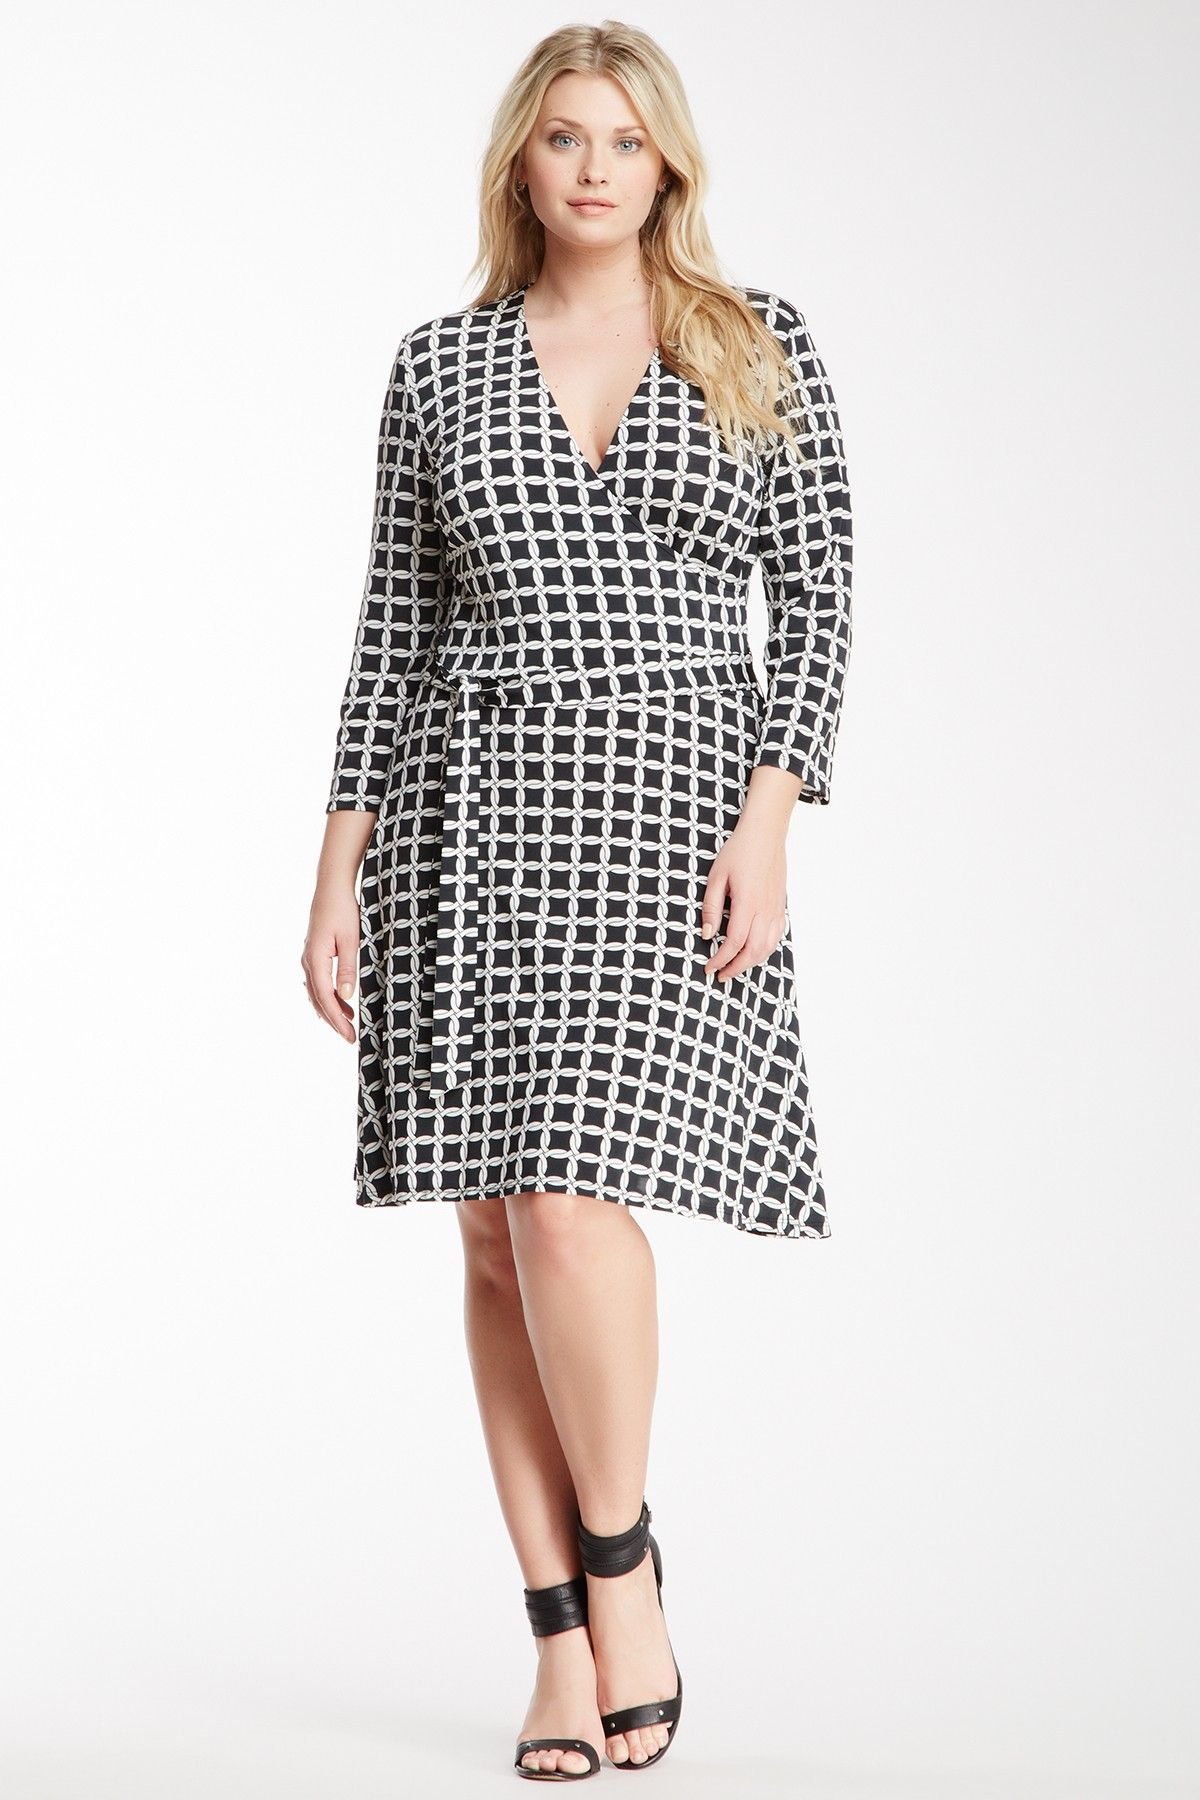 7ccd9a6328 Leota Print Long Sleeve Perfect Wrap Dress - Plus Size by Leota on   nordstrom rack